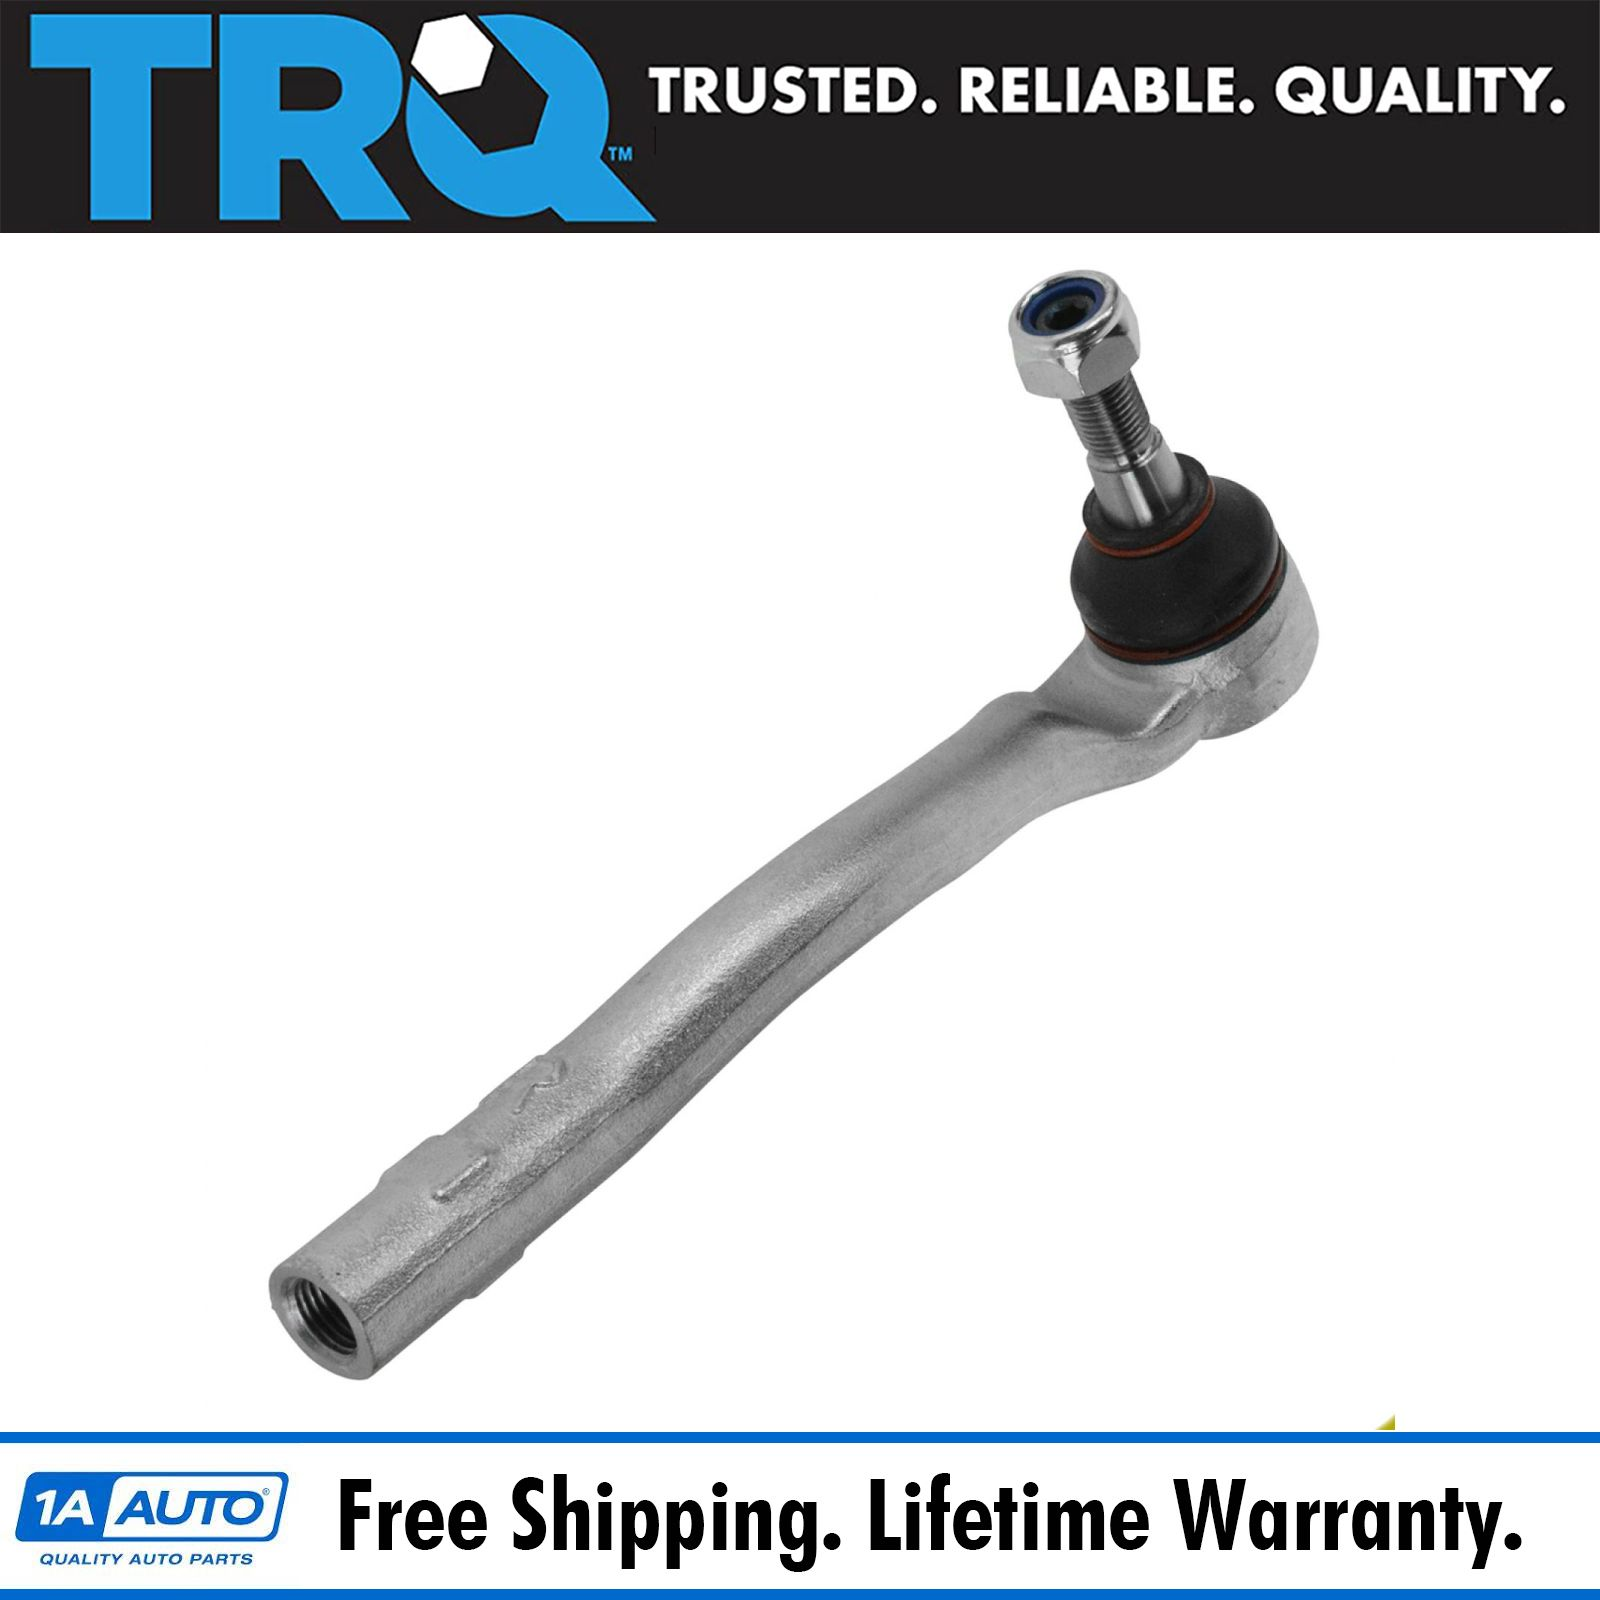 2014 Kawasaki KVF 750 Brute Force 4x4 Inner and Outer Tie Rod Ends 1 Side